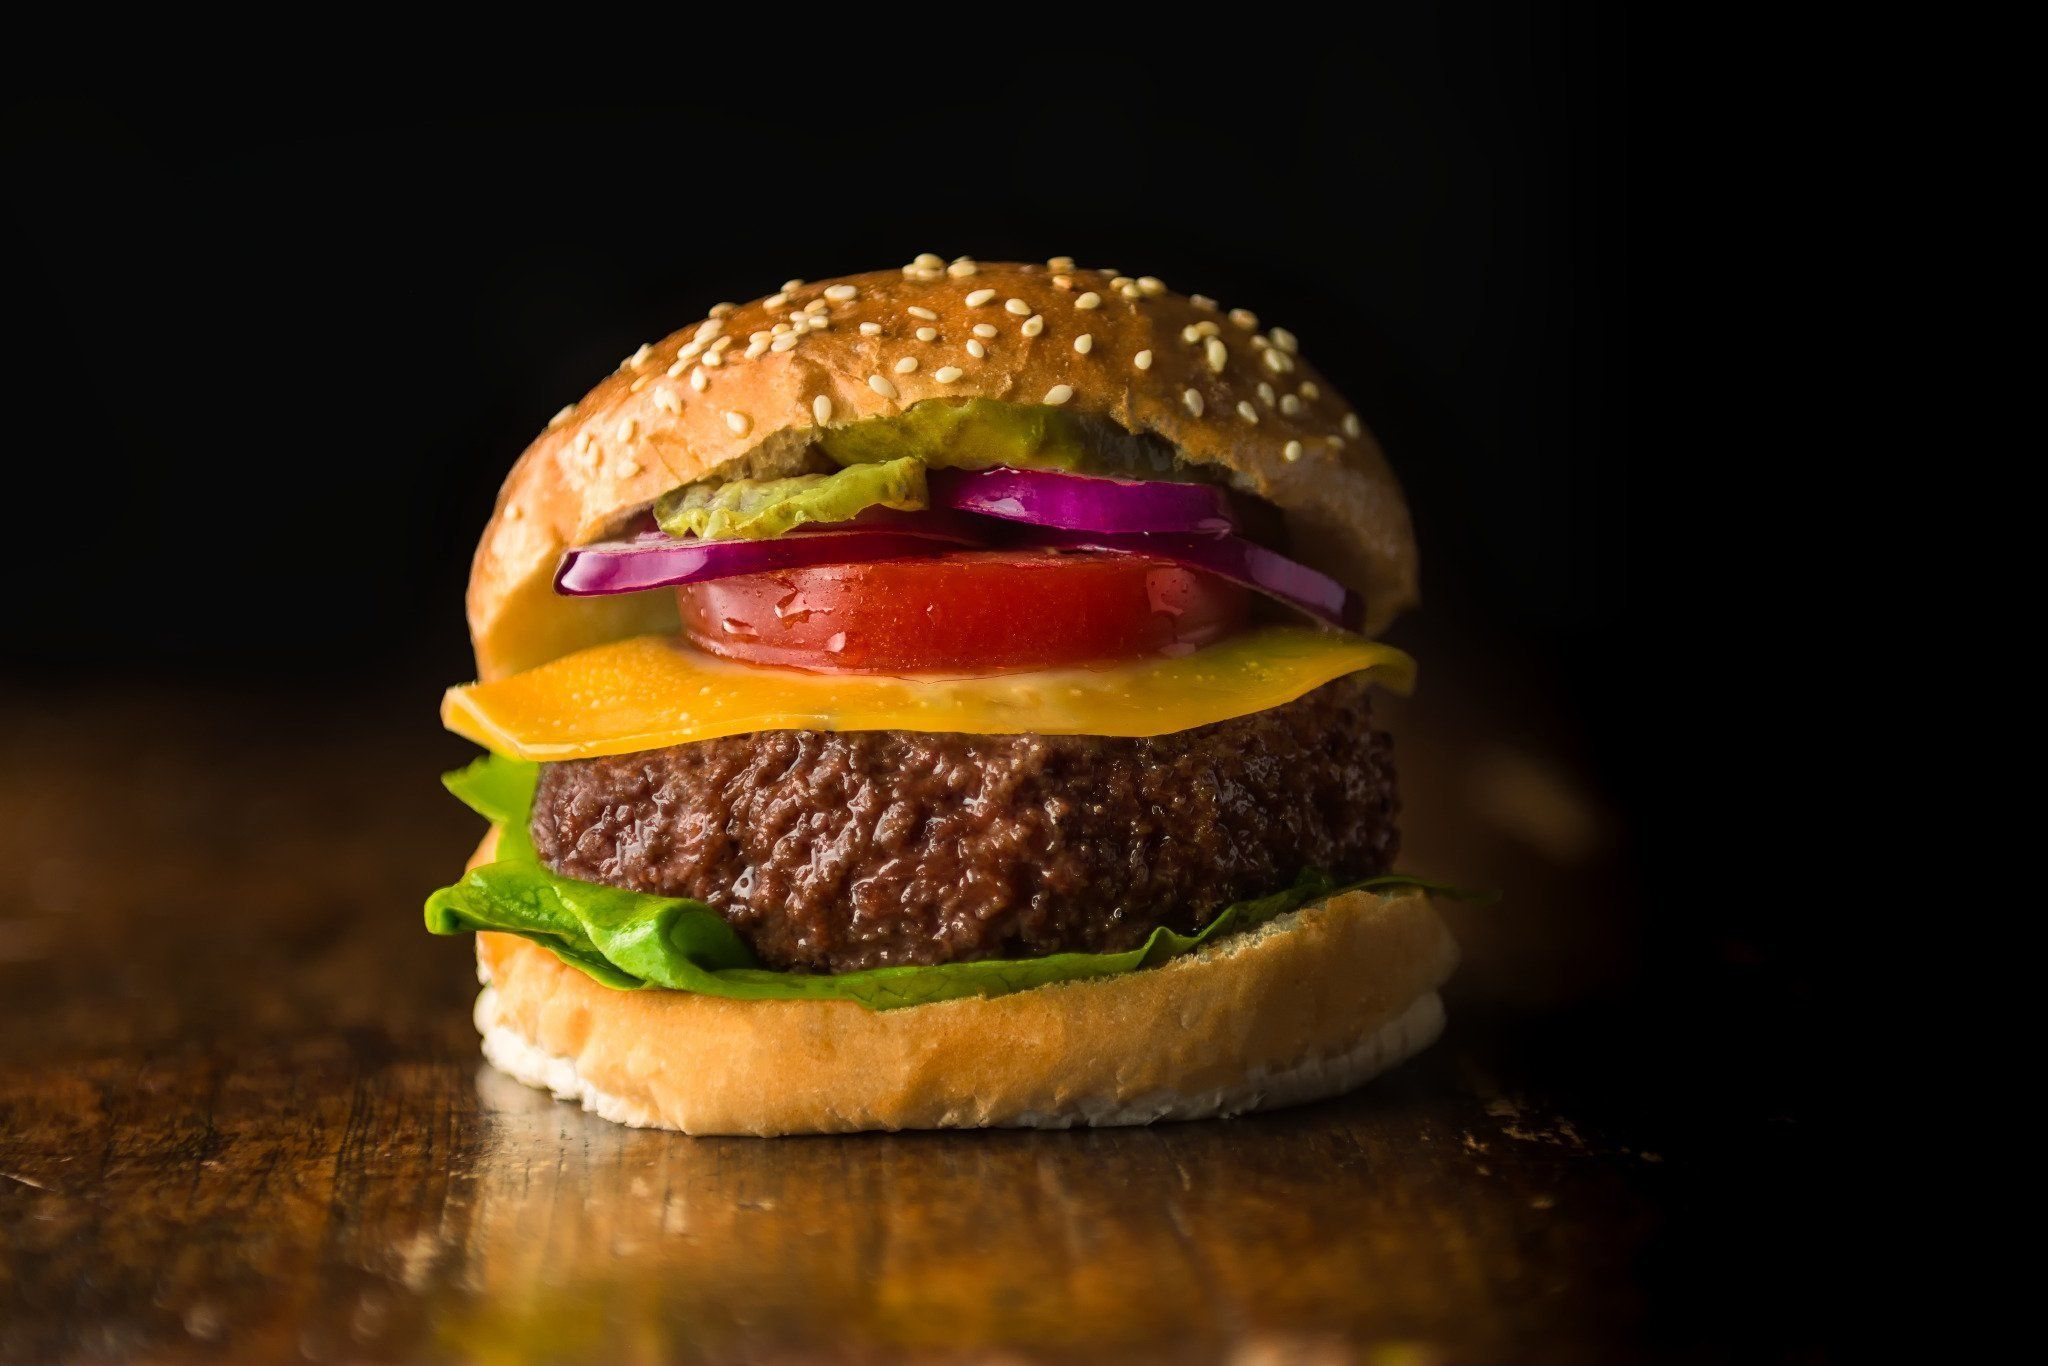 Lab-Grown Burgers Could Be On The Menu By